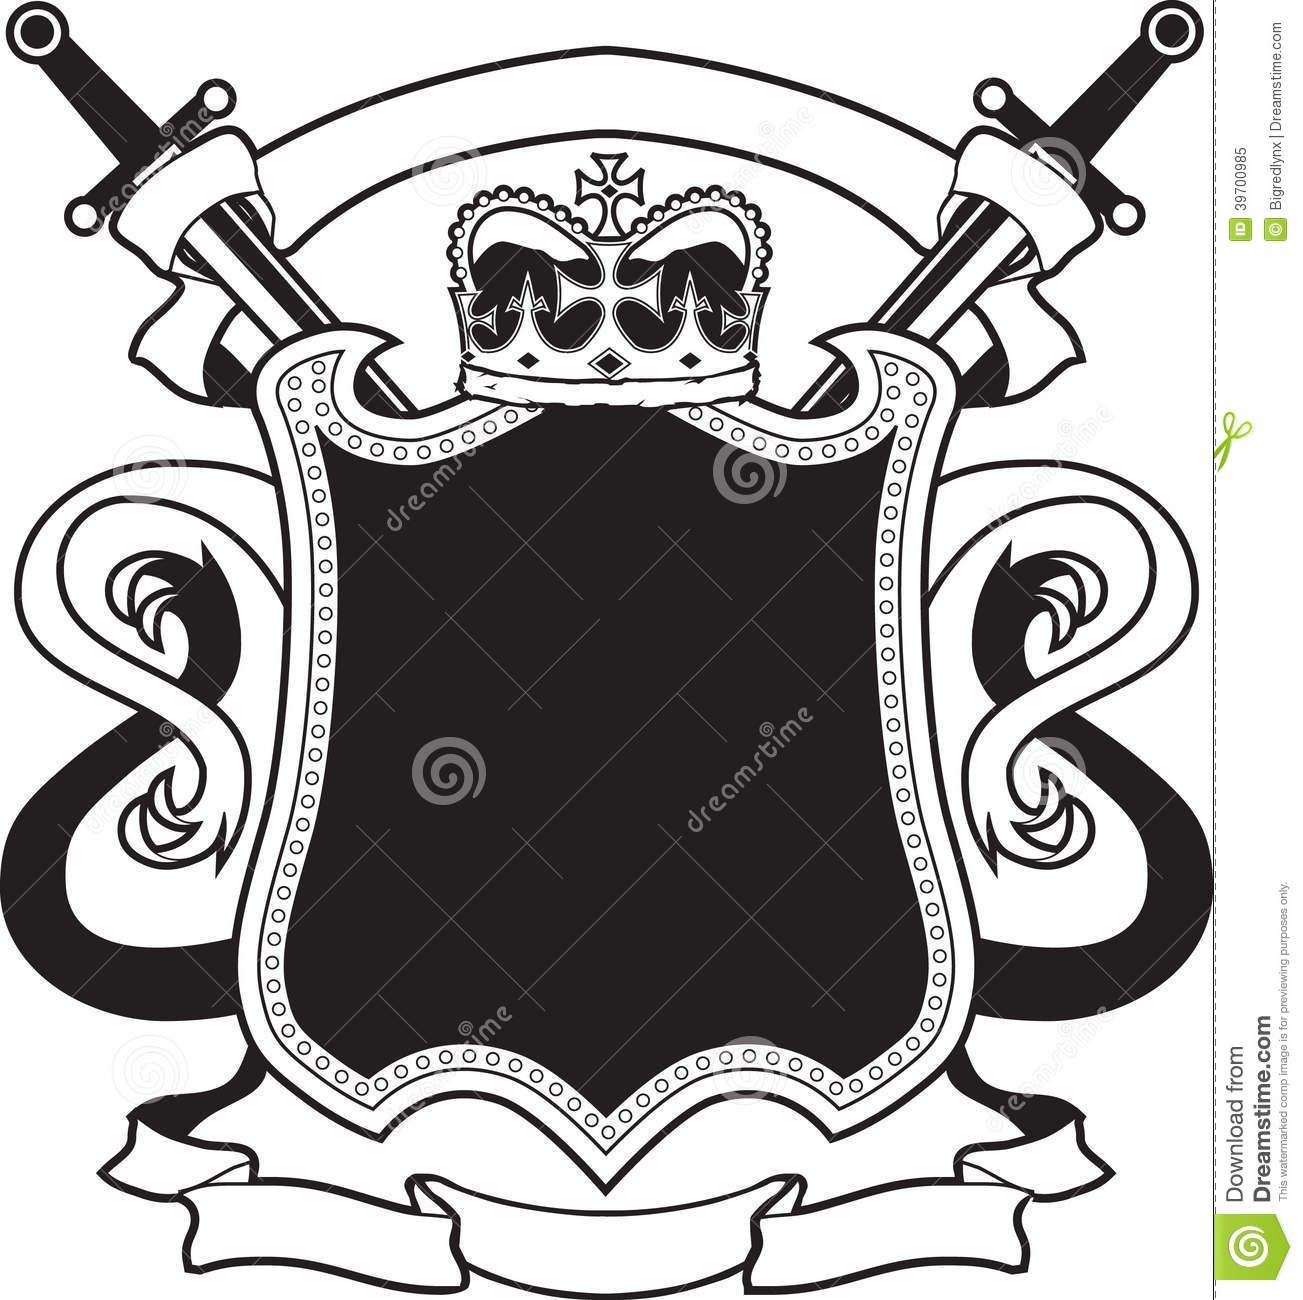 King's Crest Stock Vector Image 39700985 WHAT ABOUT A